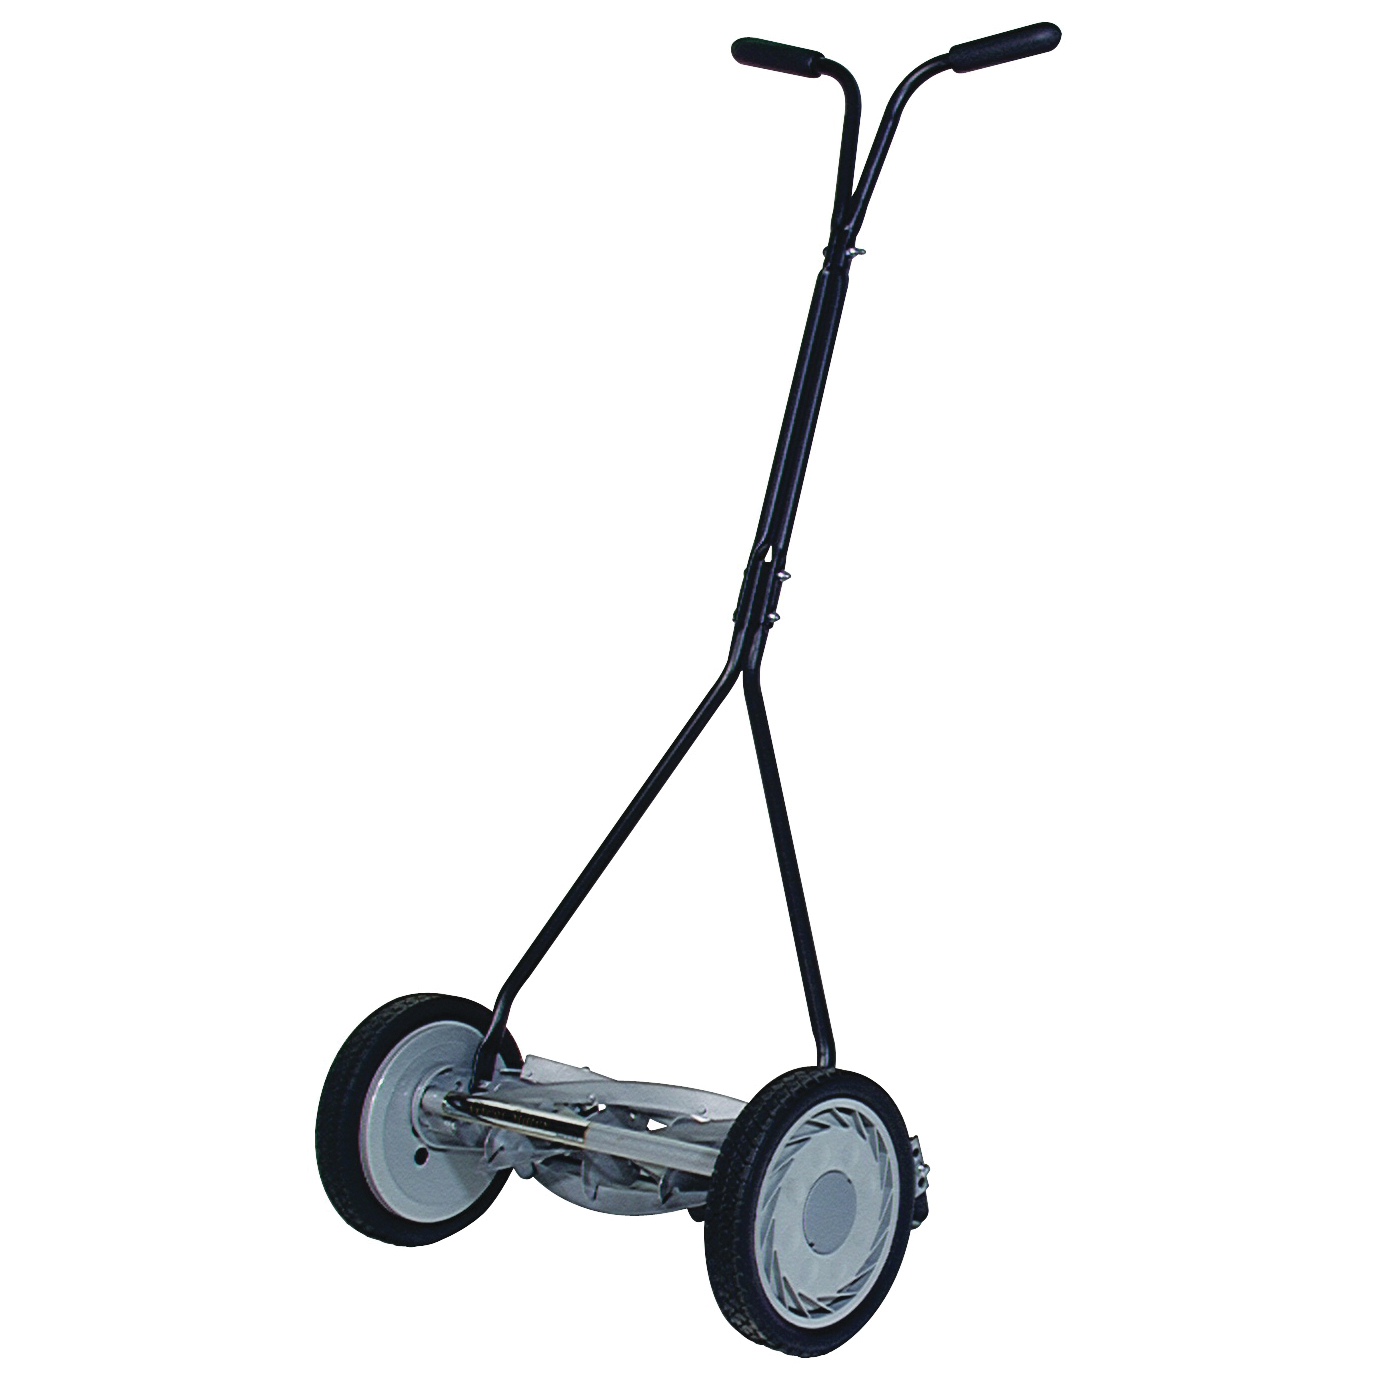 Picture of GREAT STATES 415-16 Reel Lawn Mower, 16 in W Cutting, 5 -Blade, T-Shaped Handle